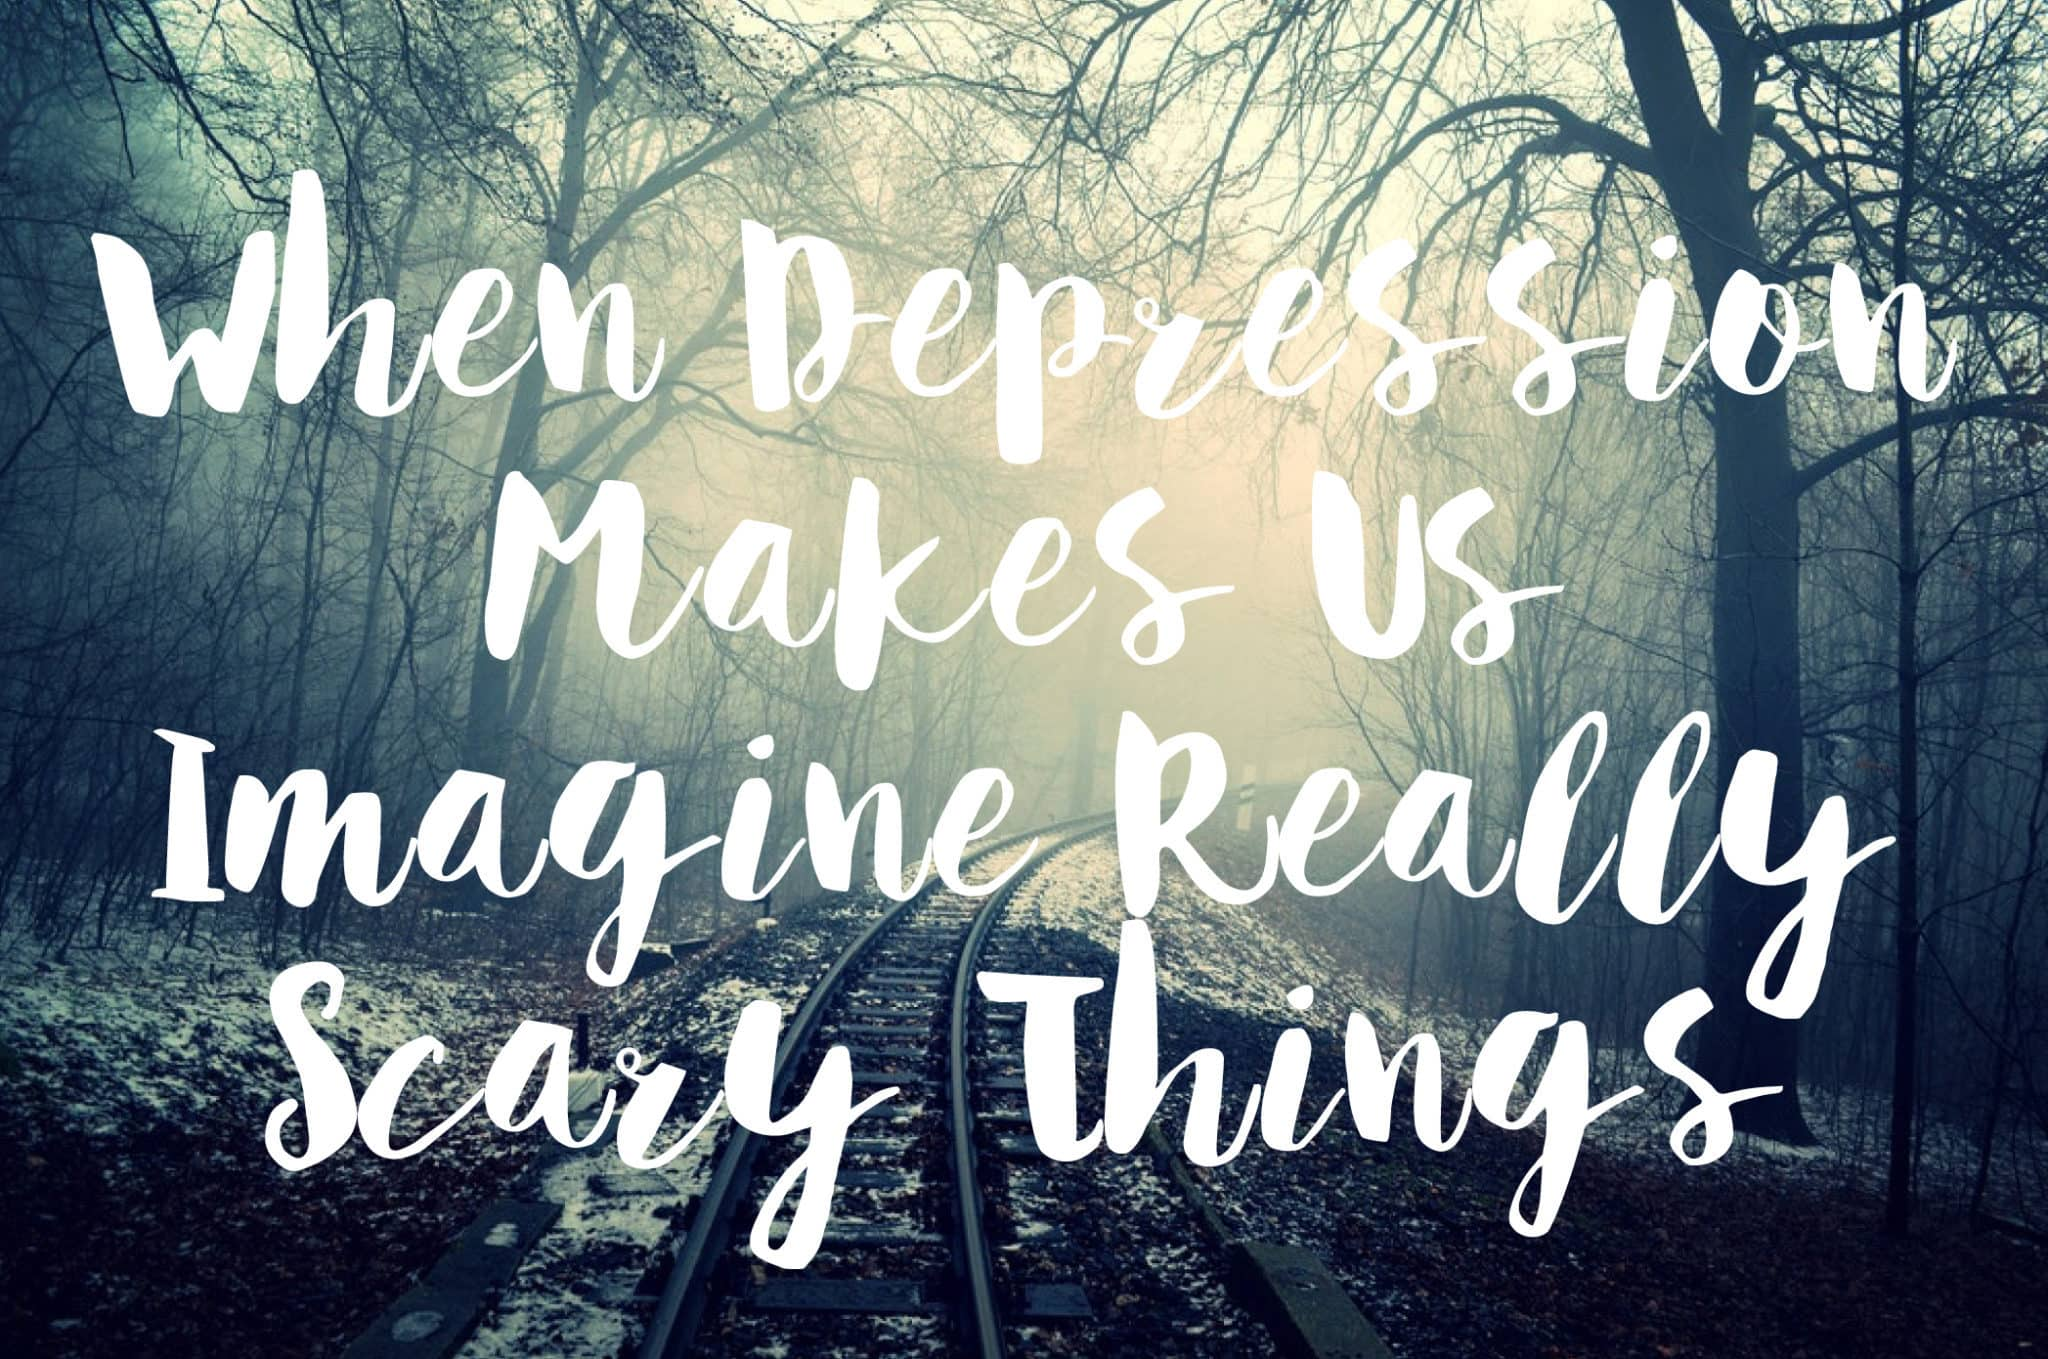 When Depression Makes Us Imagine Really Scary Things